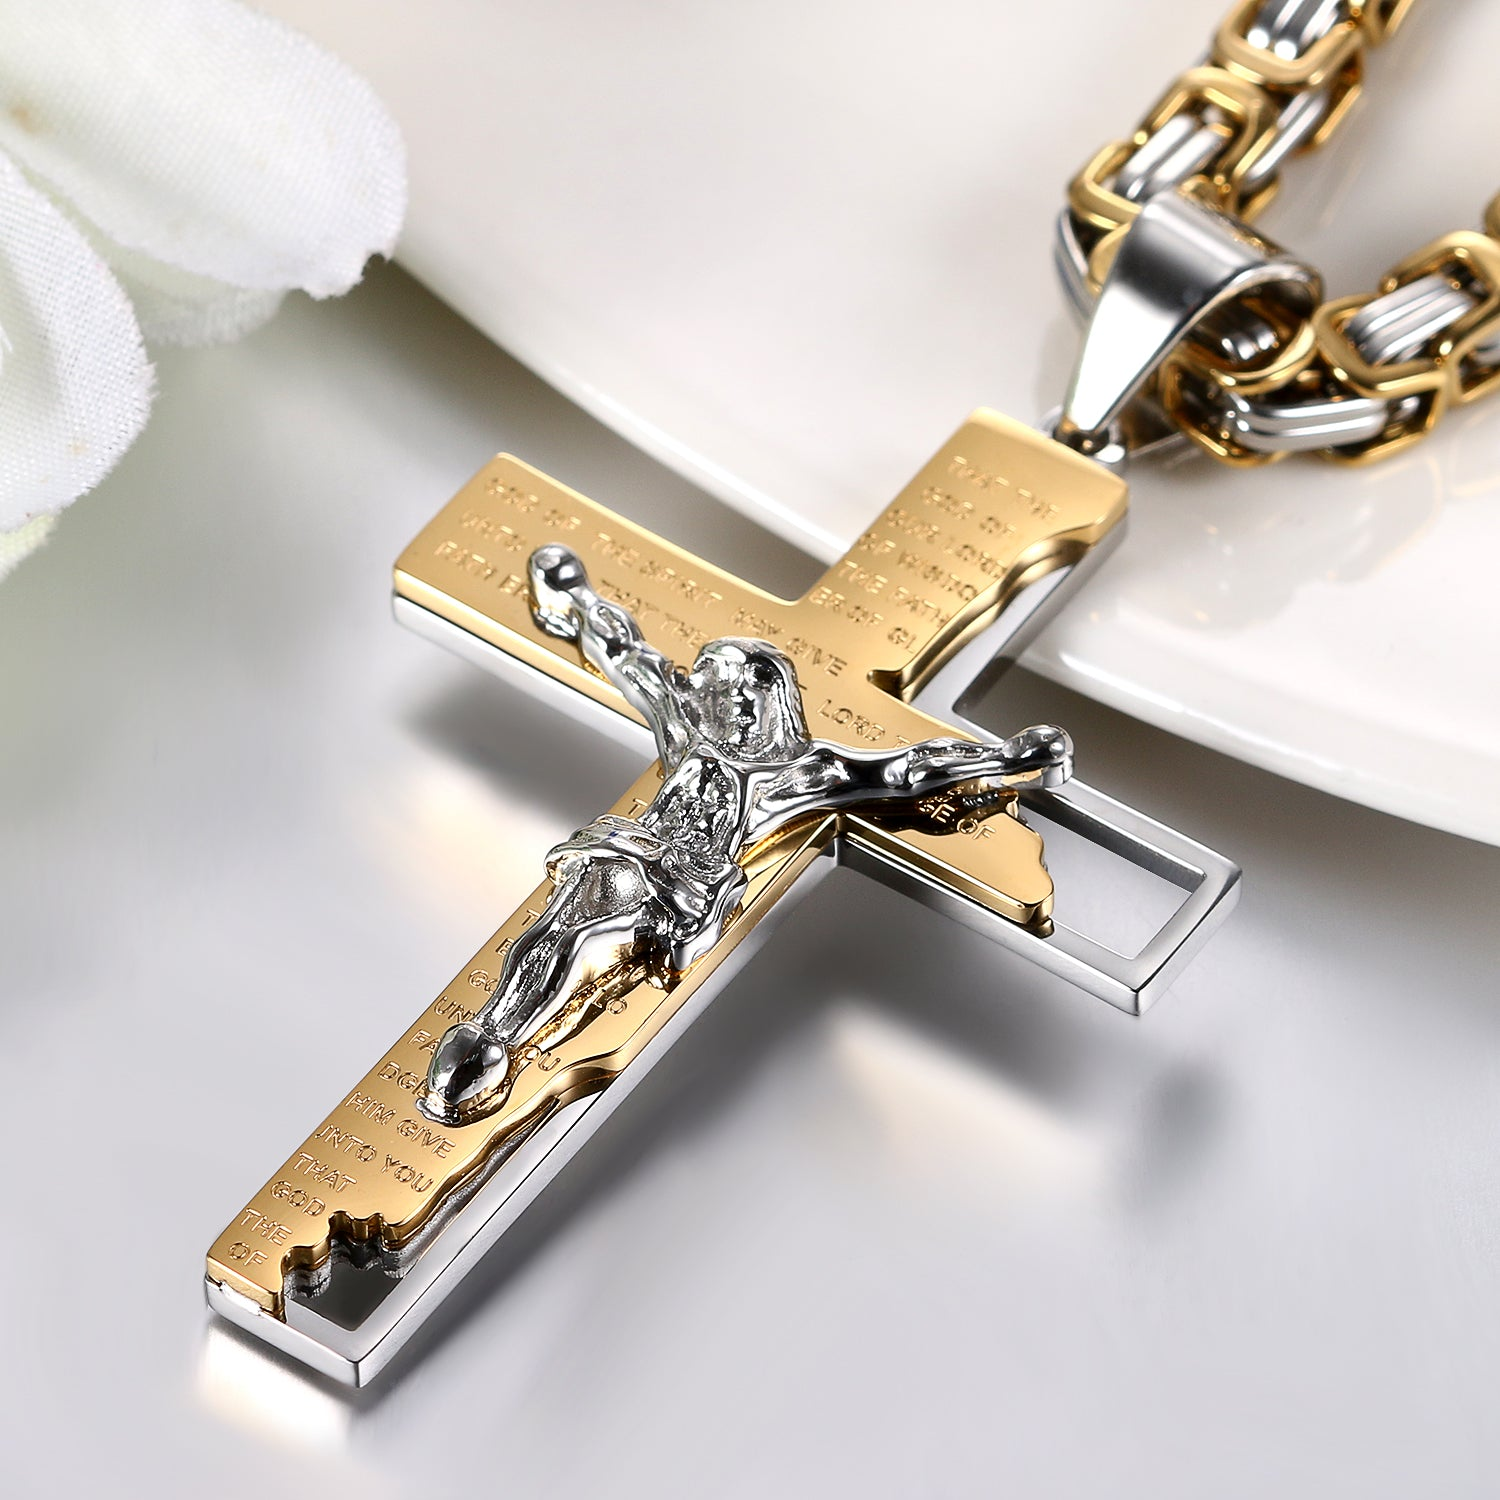 warrior pendant stainless gift the store box velvet silver tone sword with wcp steel crucifix s